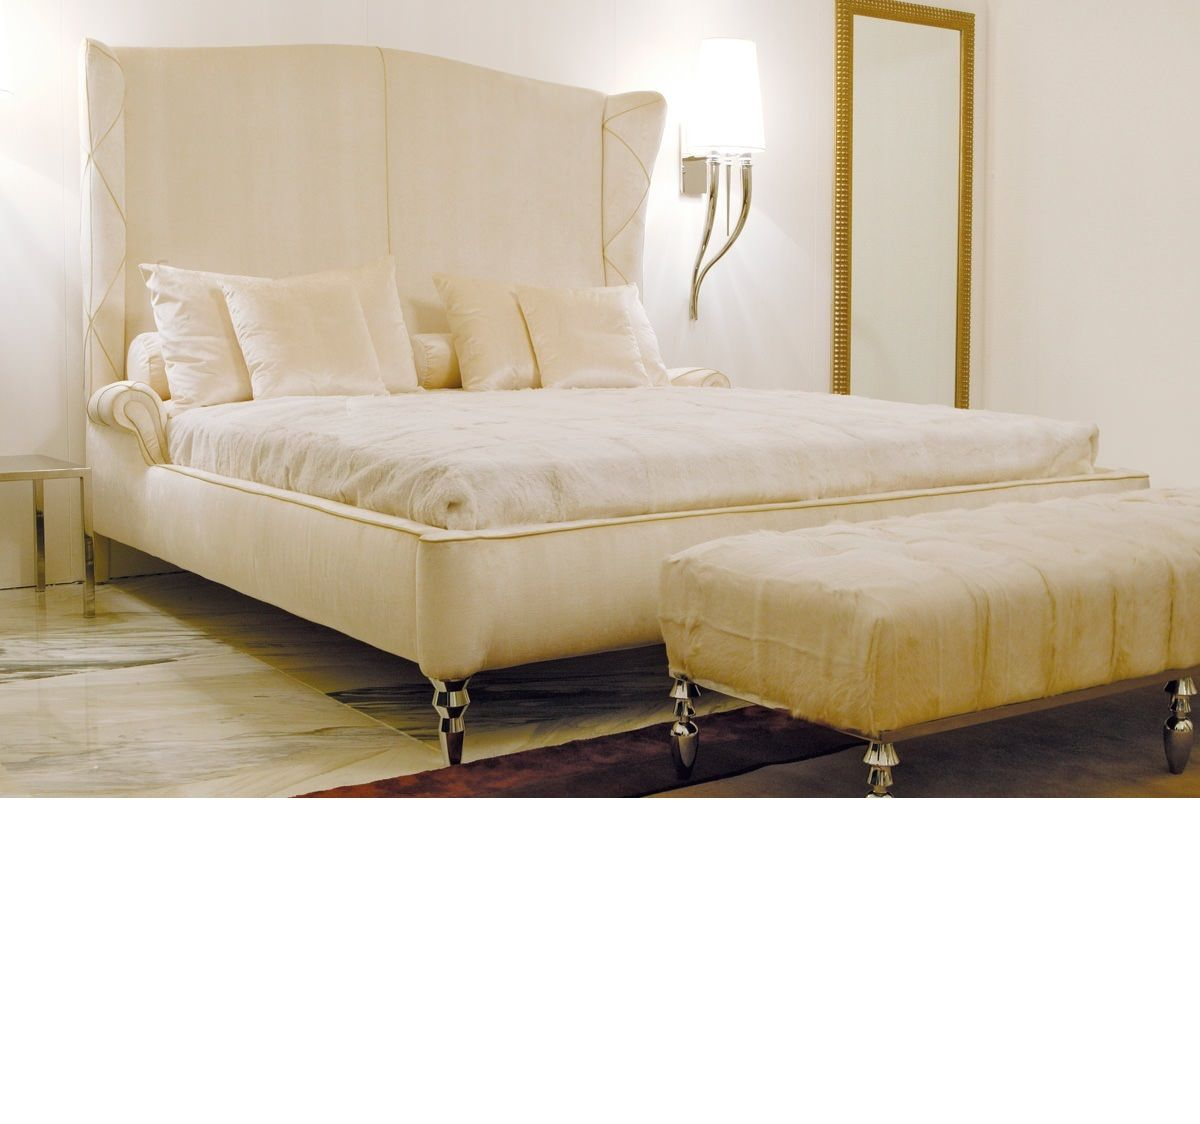 "Bedroom Furniture Designer Luxury Bedrooms"" ""luxury Bedroom Furniture"" ""designer Bedroom"